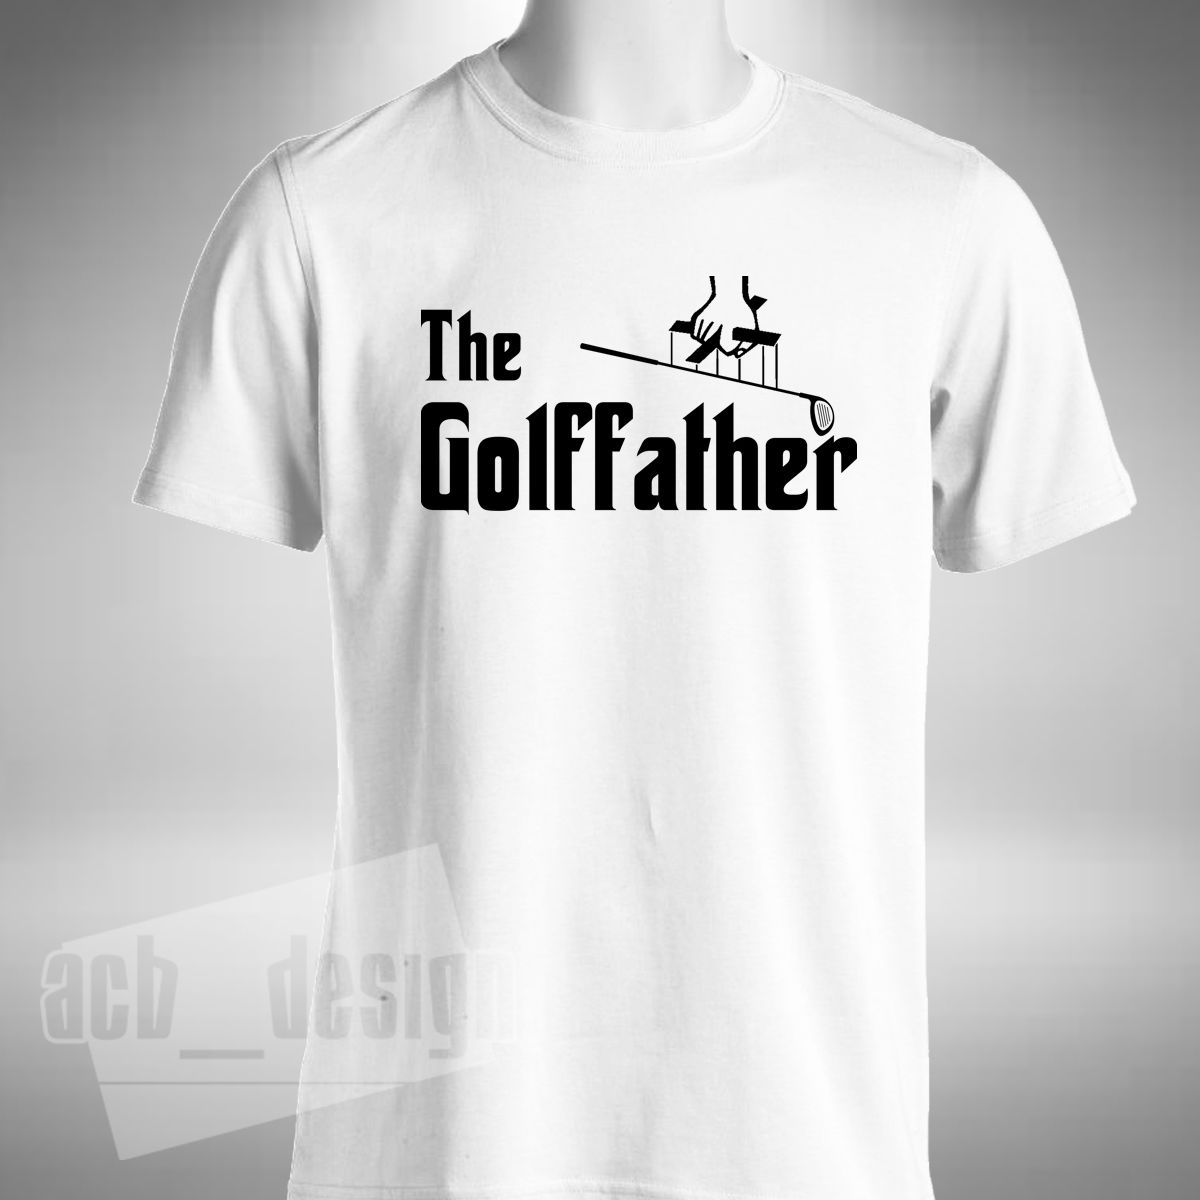 2018 New Fashion Tee Shirt Golffather T-shirt Funny Golfer Golfing Fathers Day McIlroy Spieth Summer T-shirt